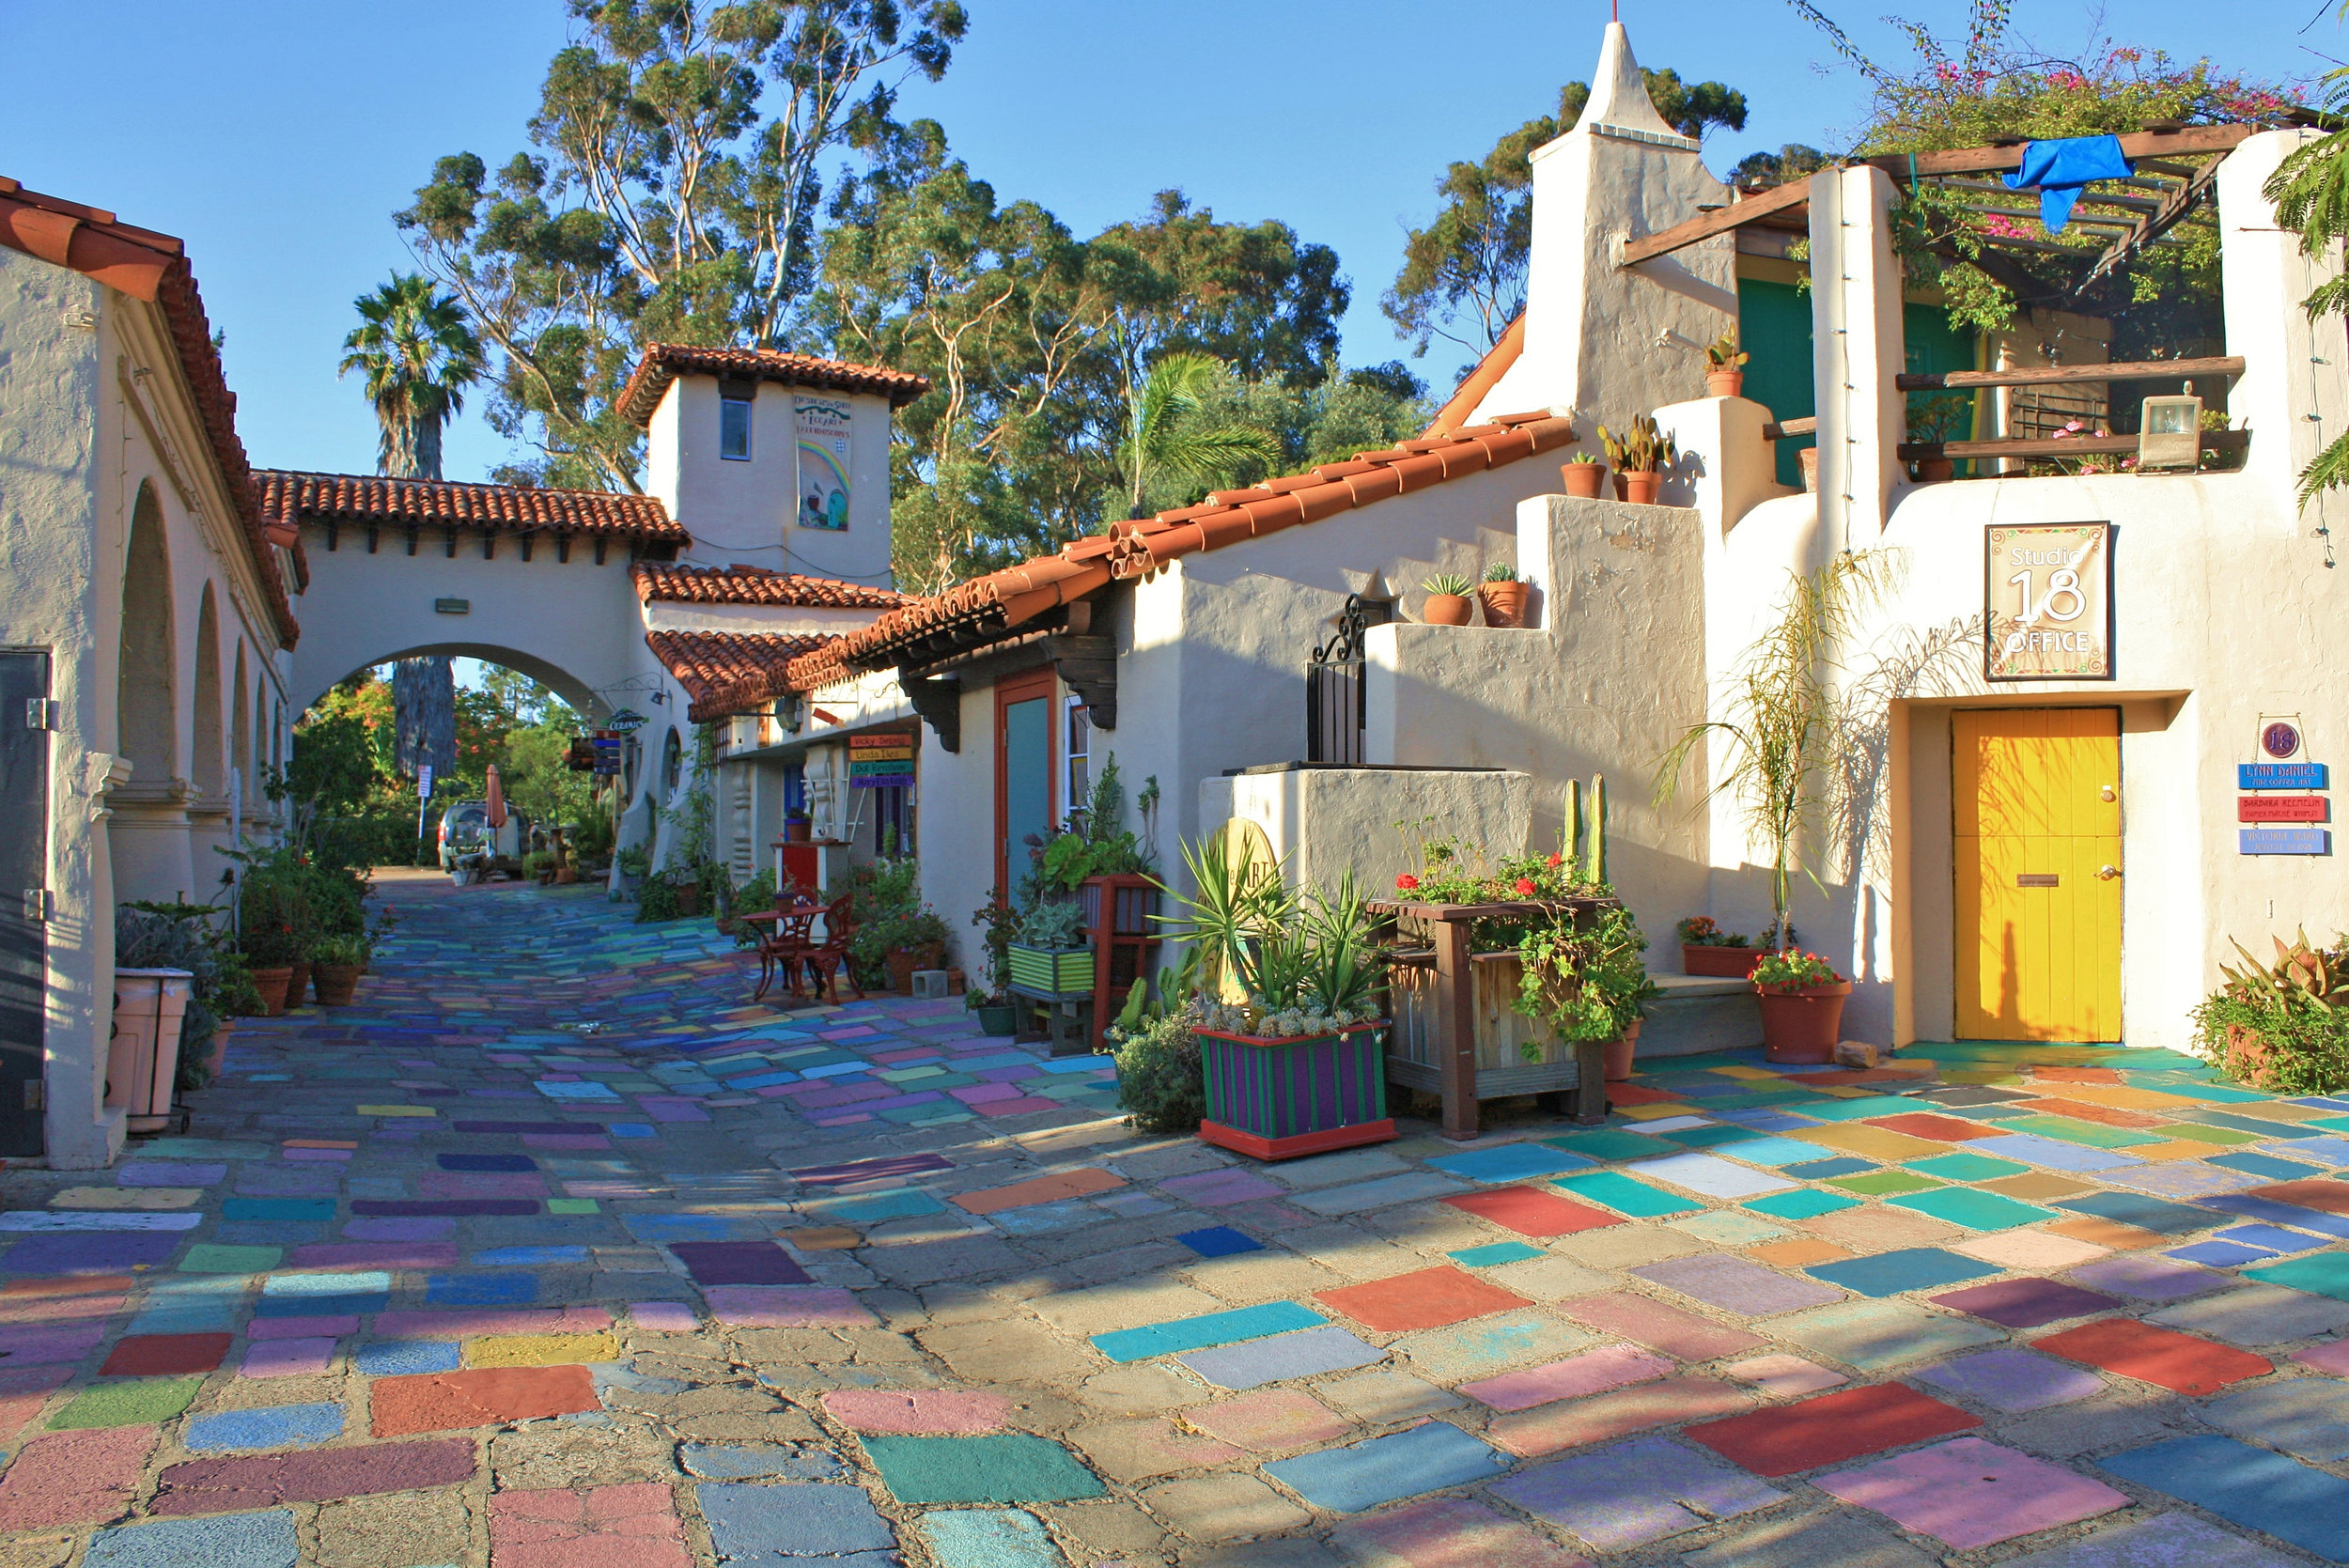 The Spanish Village.  Photo courtesy Linda Field, via sandiego.org.